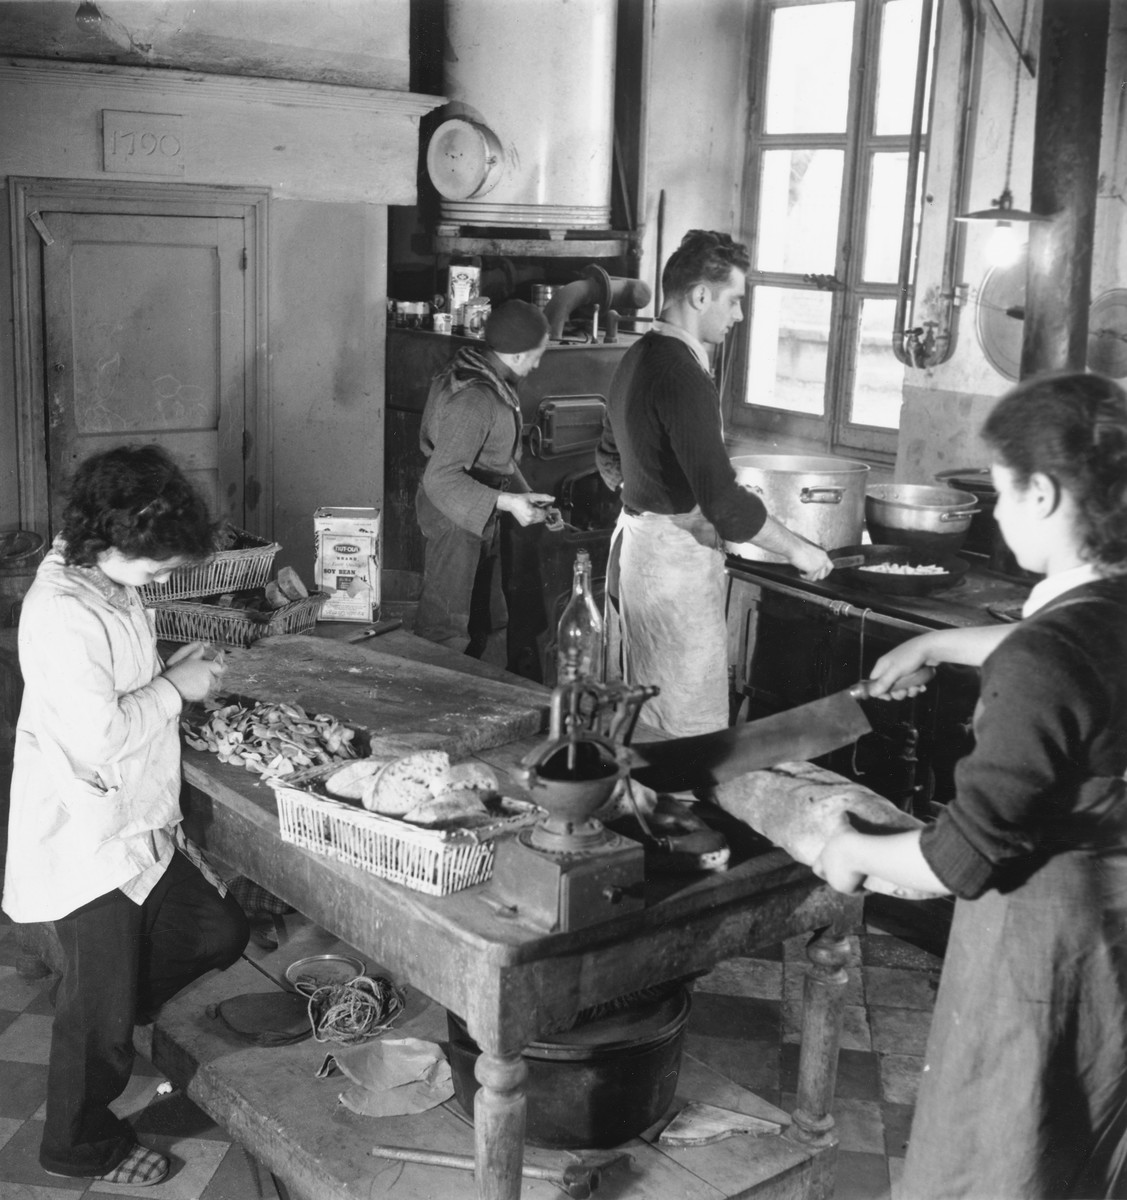 Two children help prepare food in the kitchen of an unidentified post-war OSE children's home.